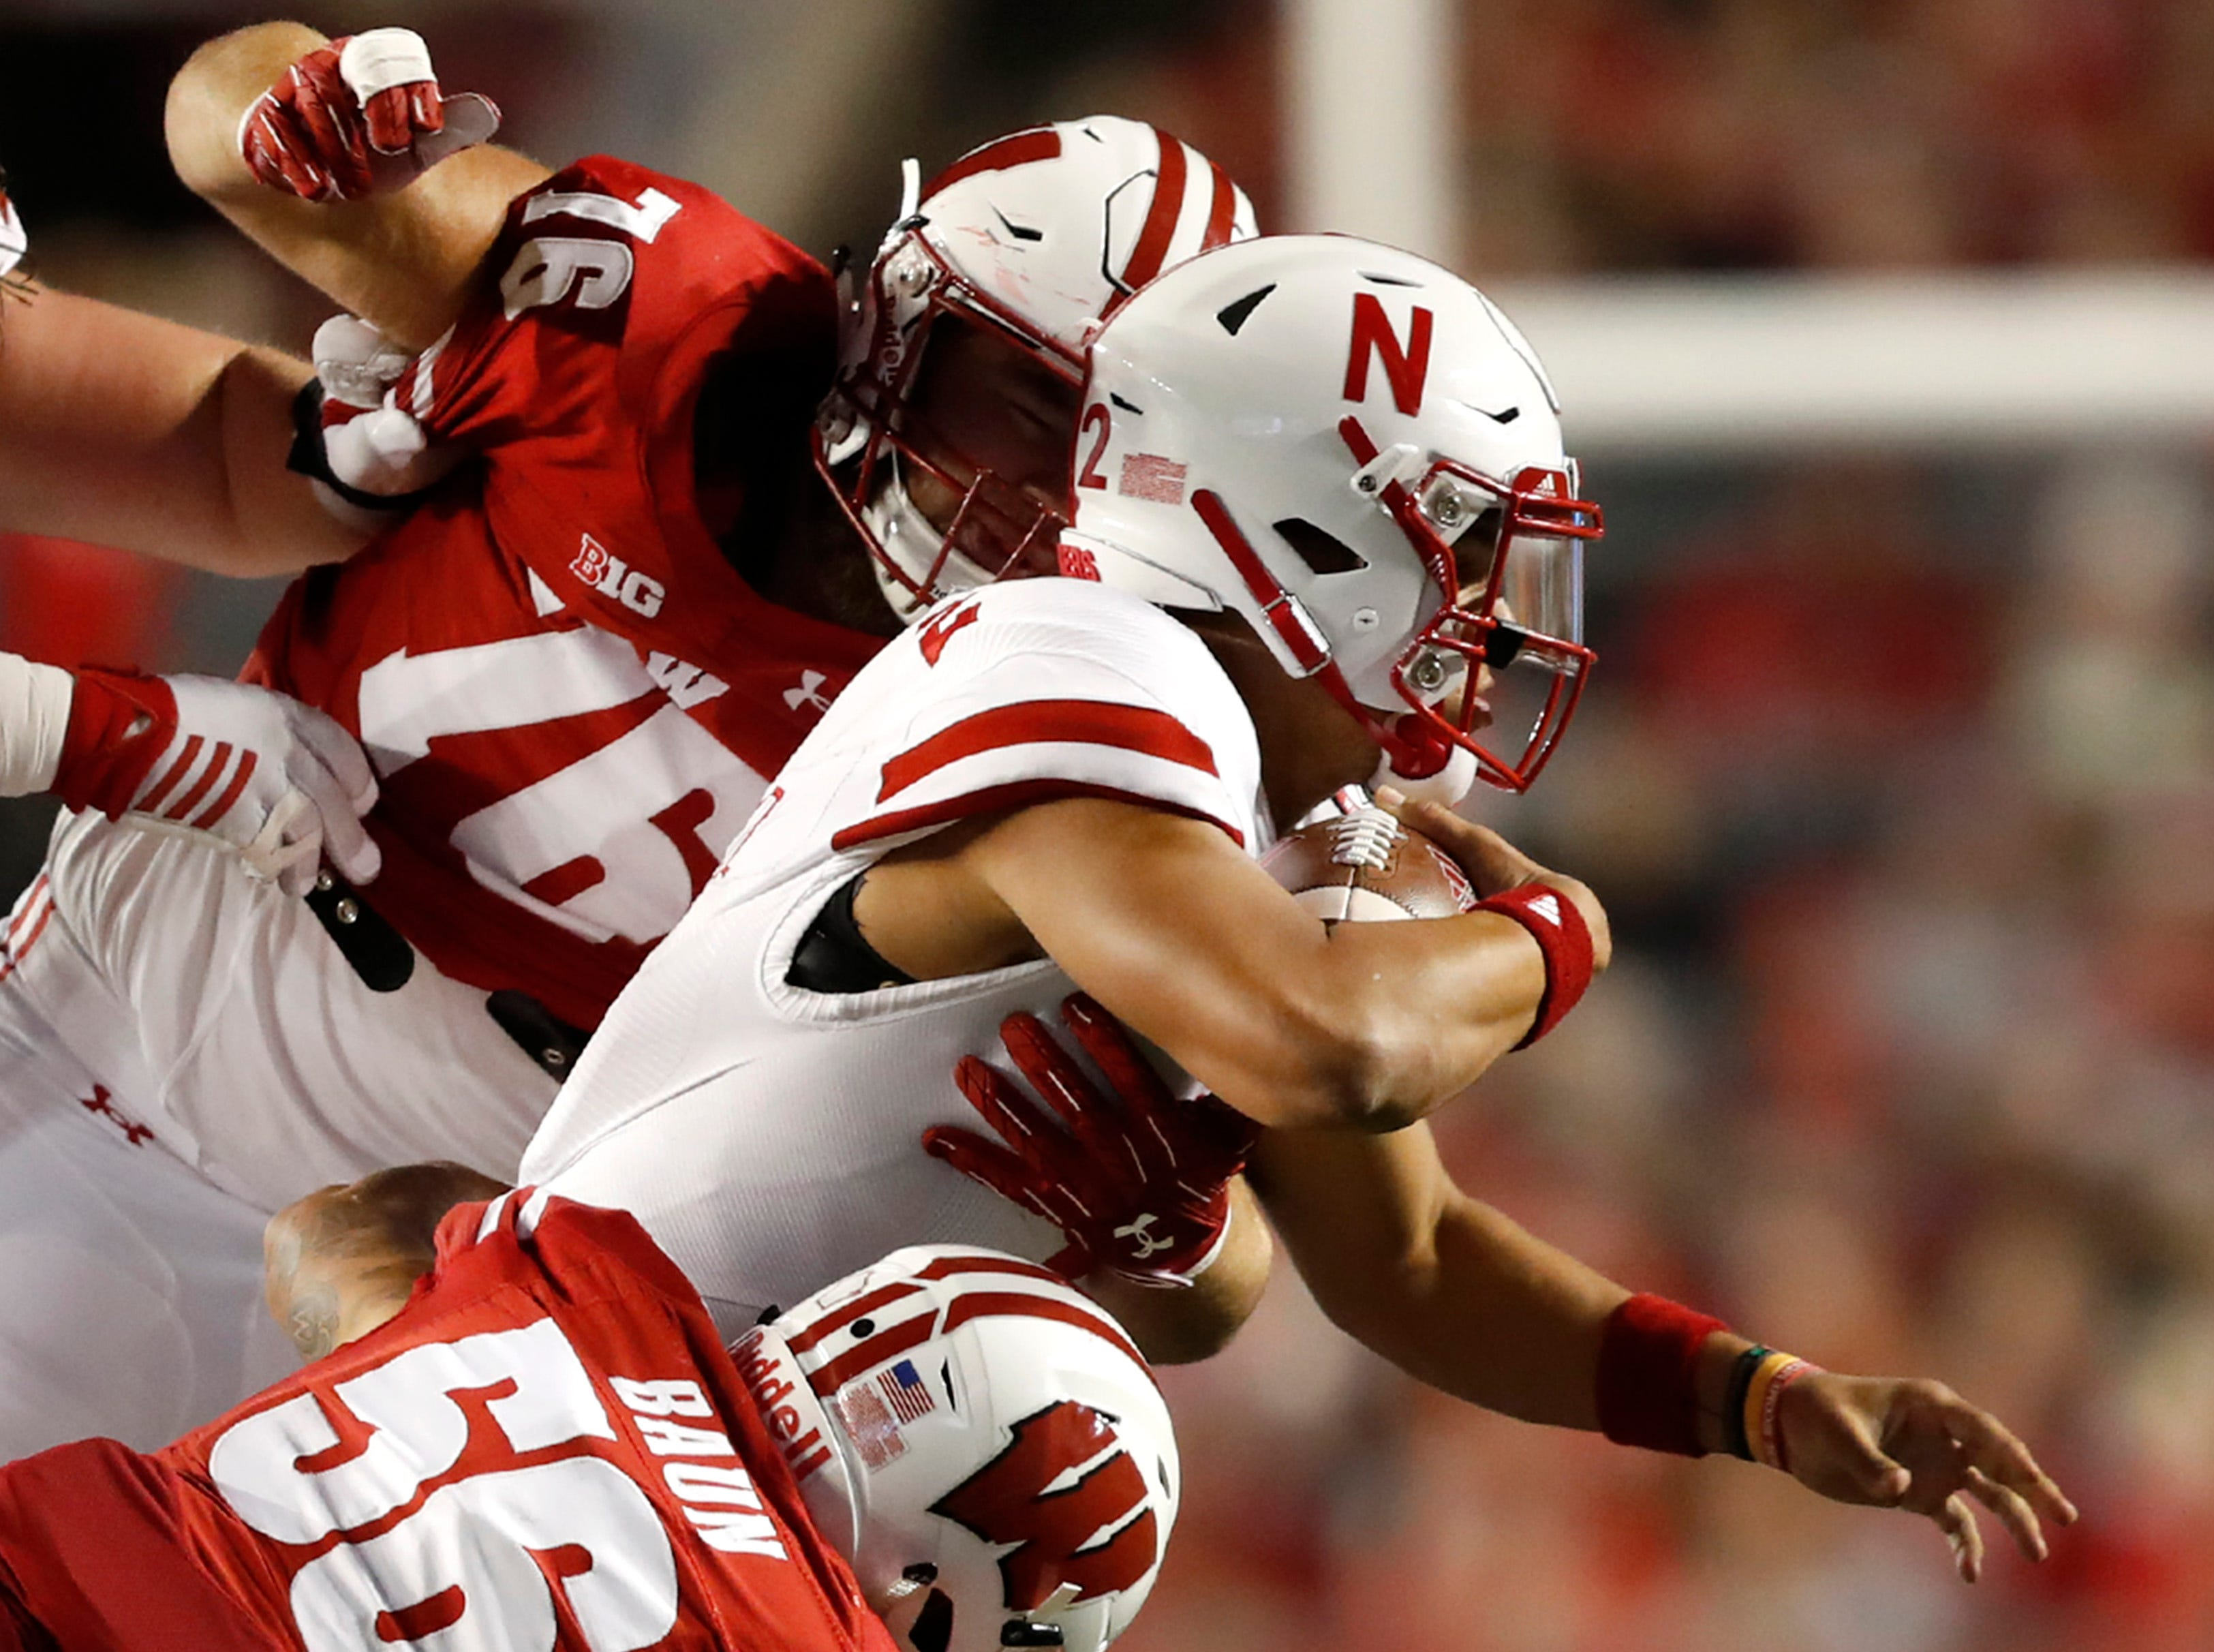 Nebraska quarterback Adrian Martinez is brought down by the Wisconsin defense Saturday, Oct. 6, 2018, at Camp Randall Stadium in Madison, Wis.